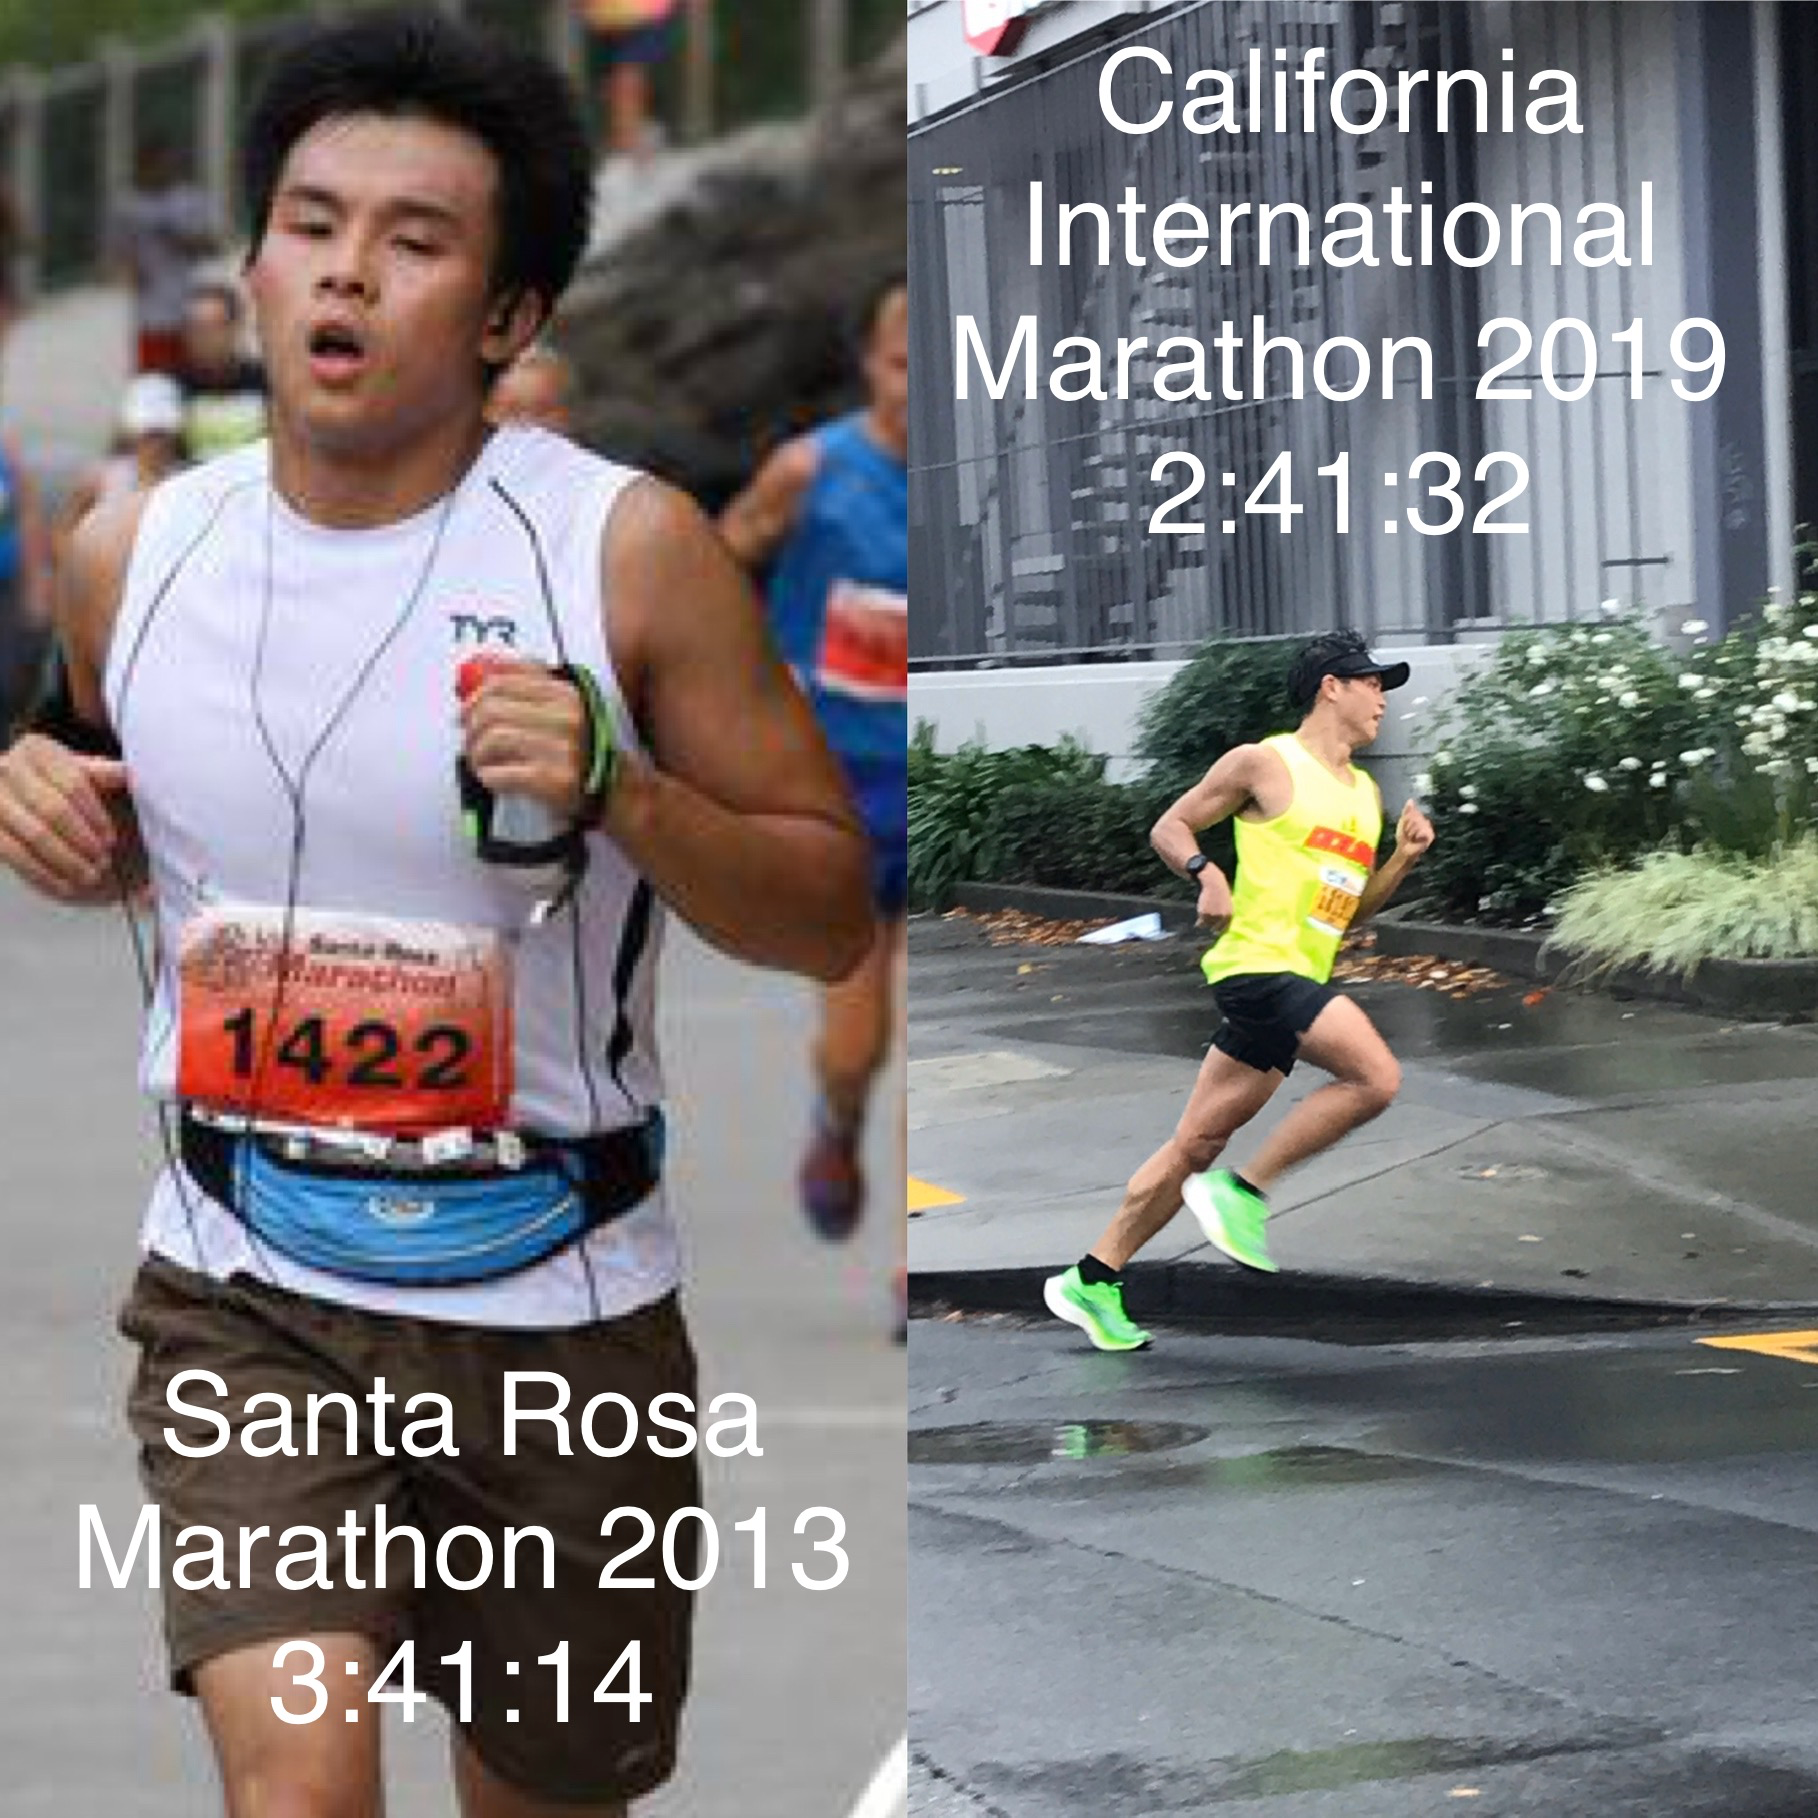 Left: Marathon #1 at the Santa Rosa Marathon, 2013: 3:41:14, Marathon #13 at the California International Marathon 2019: 2:41:32